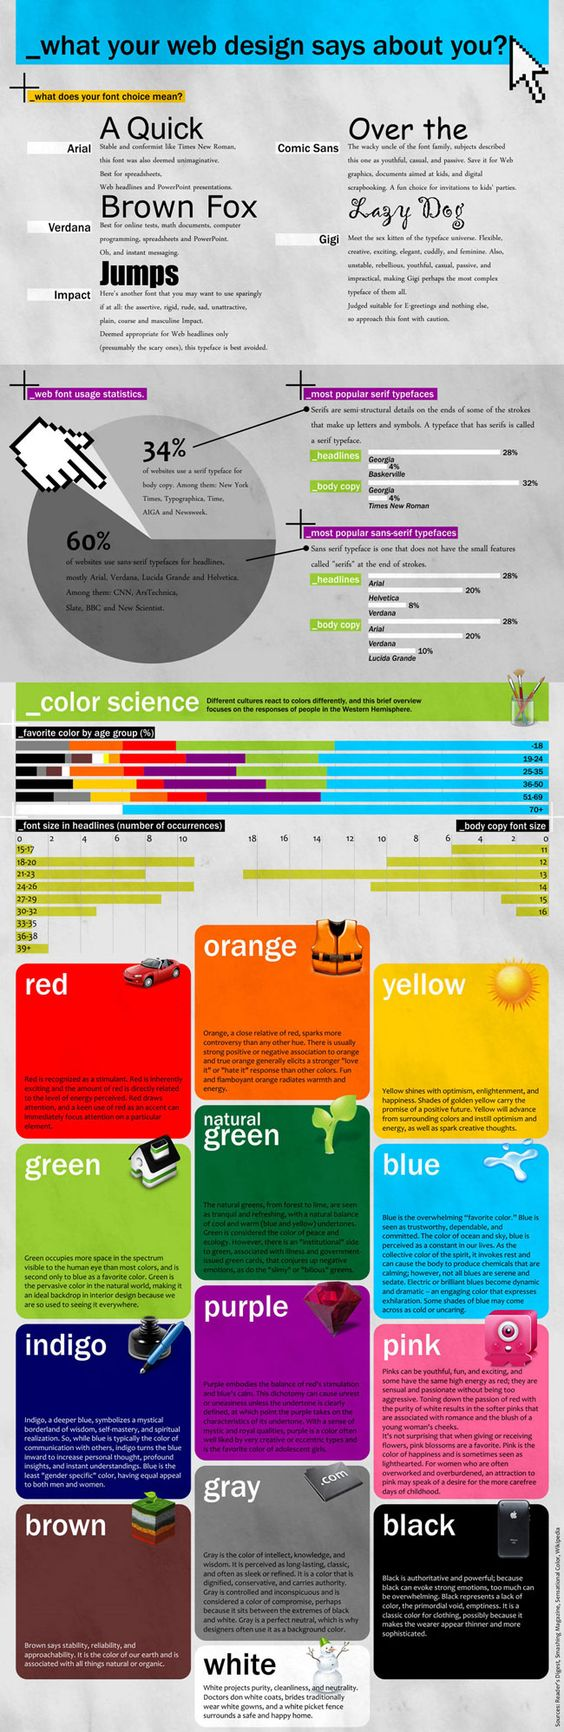 What your web site design says about you.